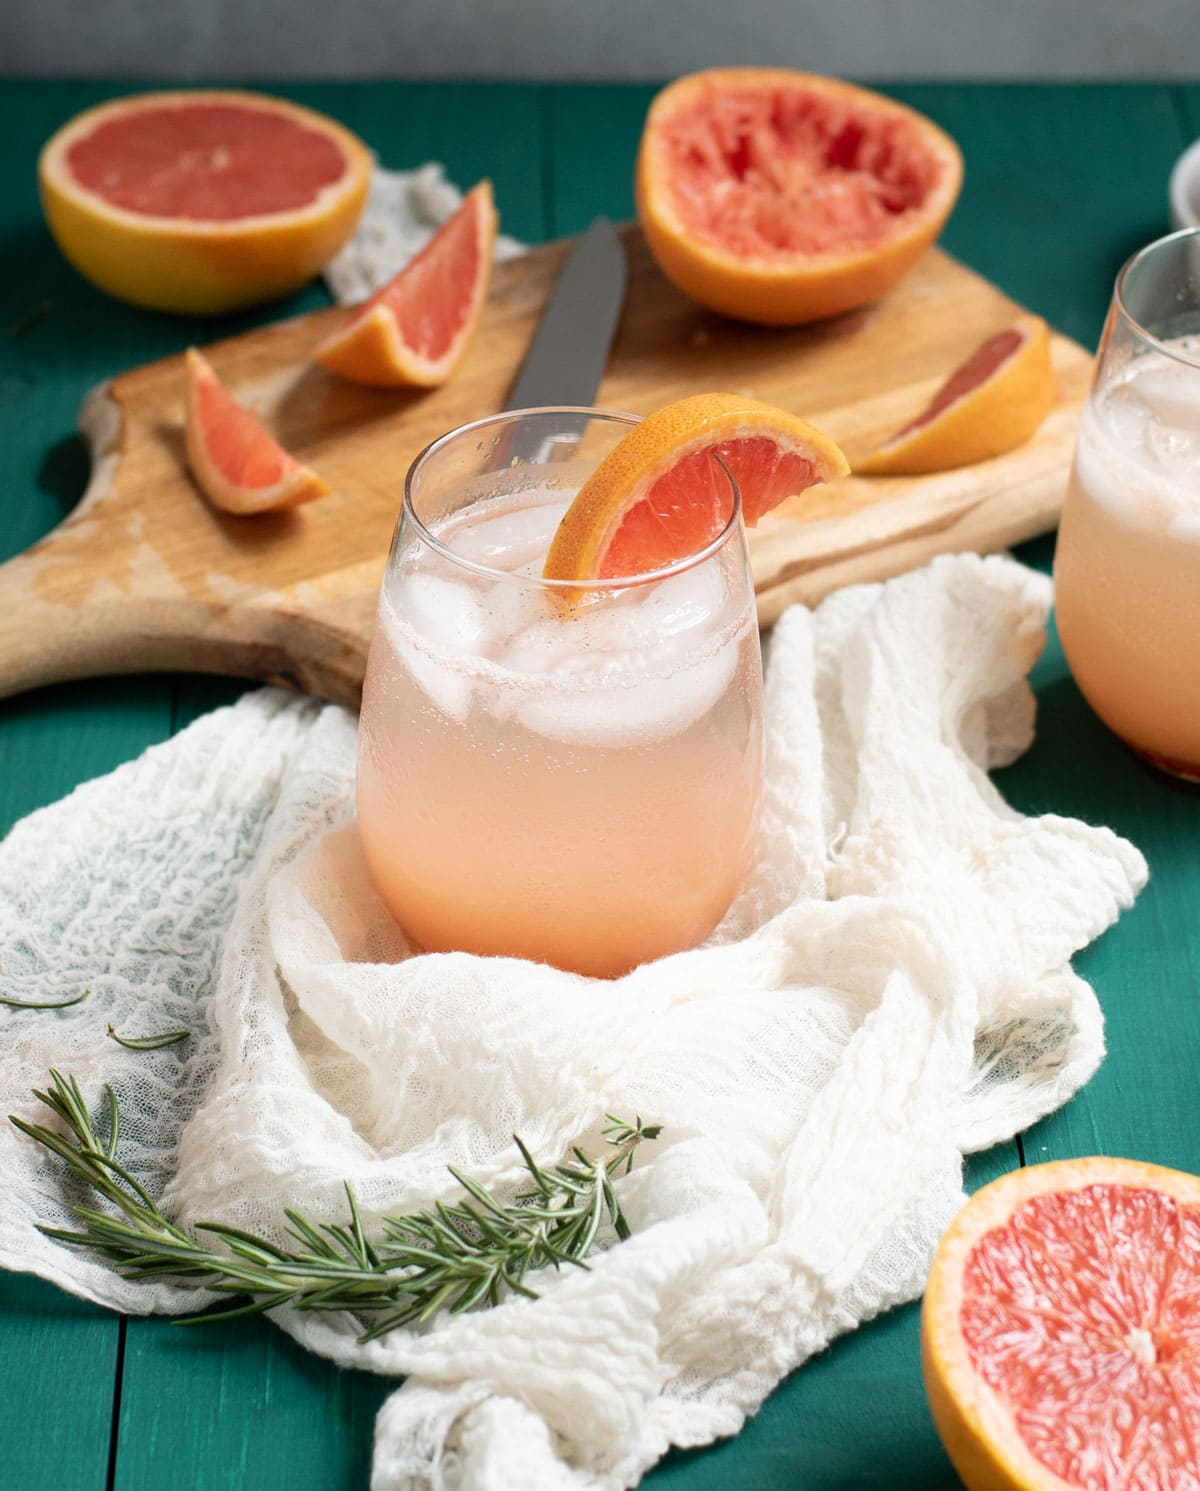 Rosemary grapefruit mocktail with grapefruit garnish